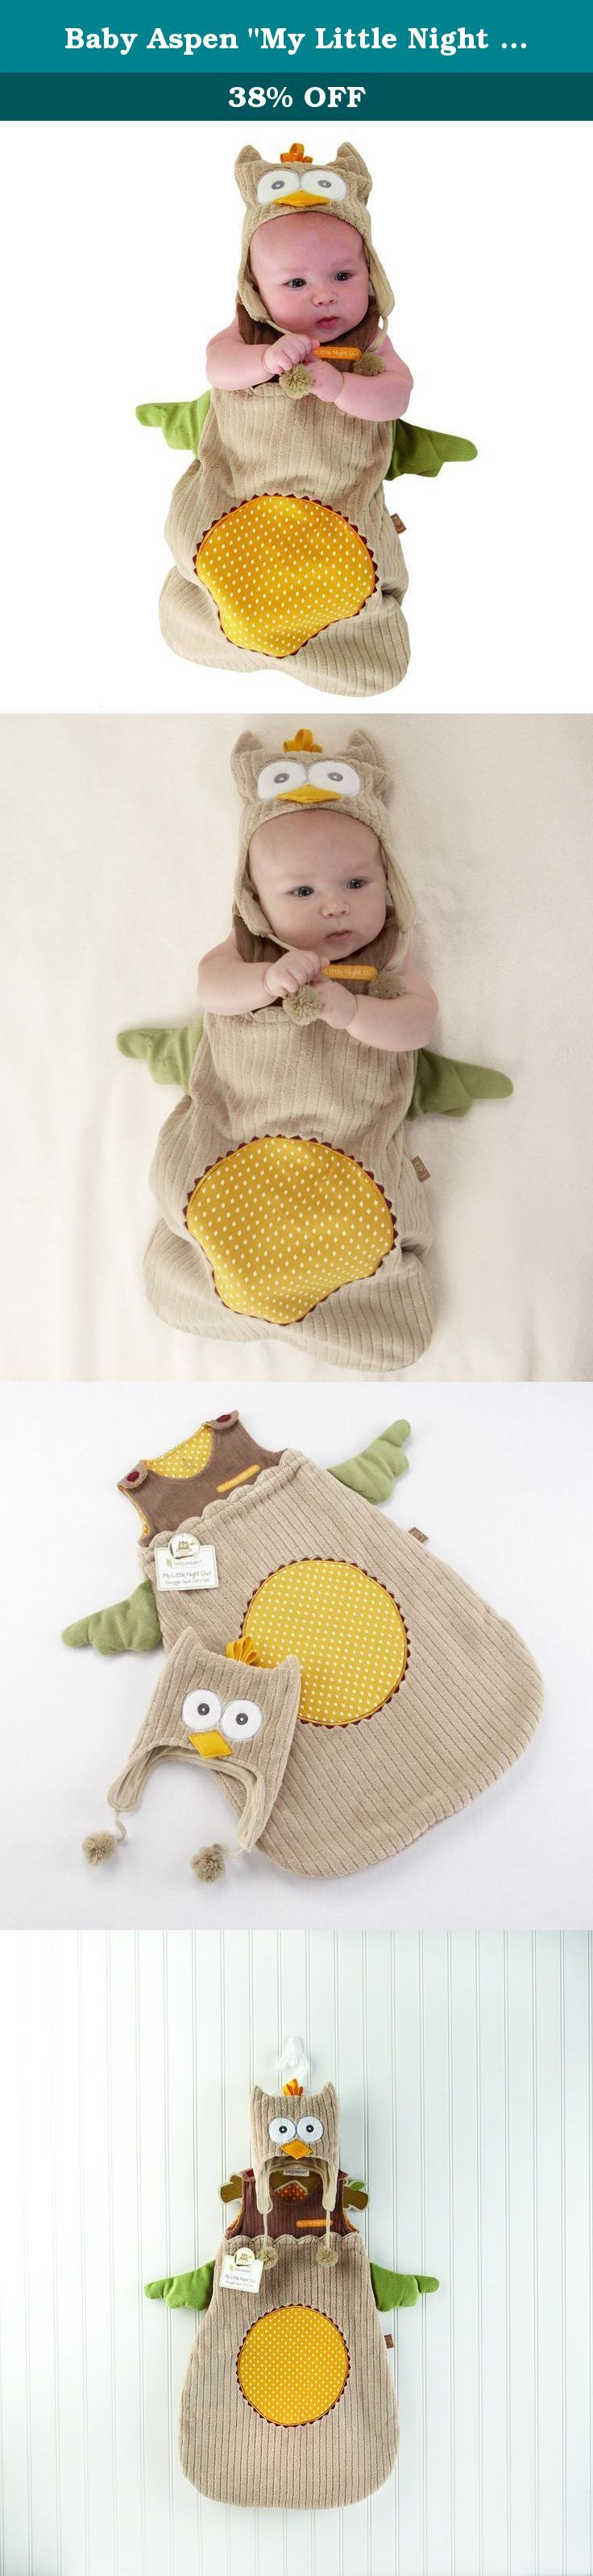 """Baby Aspen """"My Little Night Owl"""" Snuggle Sack and Cap, 0-6 months. What a wise choice! Whooo can resist """"My Little Night Owl,"""" Baby Aspen's dreamy snuggle sack? It's almost too cute for words, but we'll find some! How about unique? Adorable? Huggable? The bright spot at the baby shower? And, of course, the most original baby gift a new mom and dad can receive! Why not send the best to their nest?."""